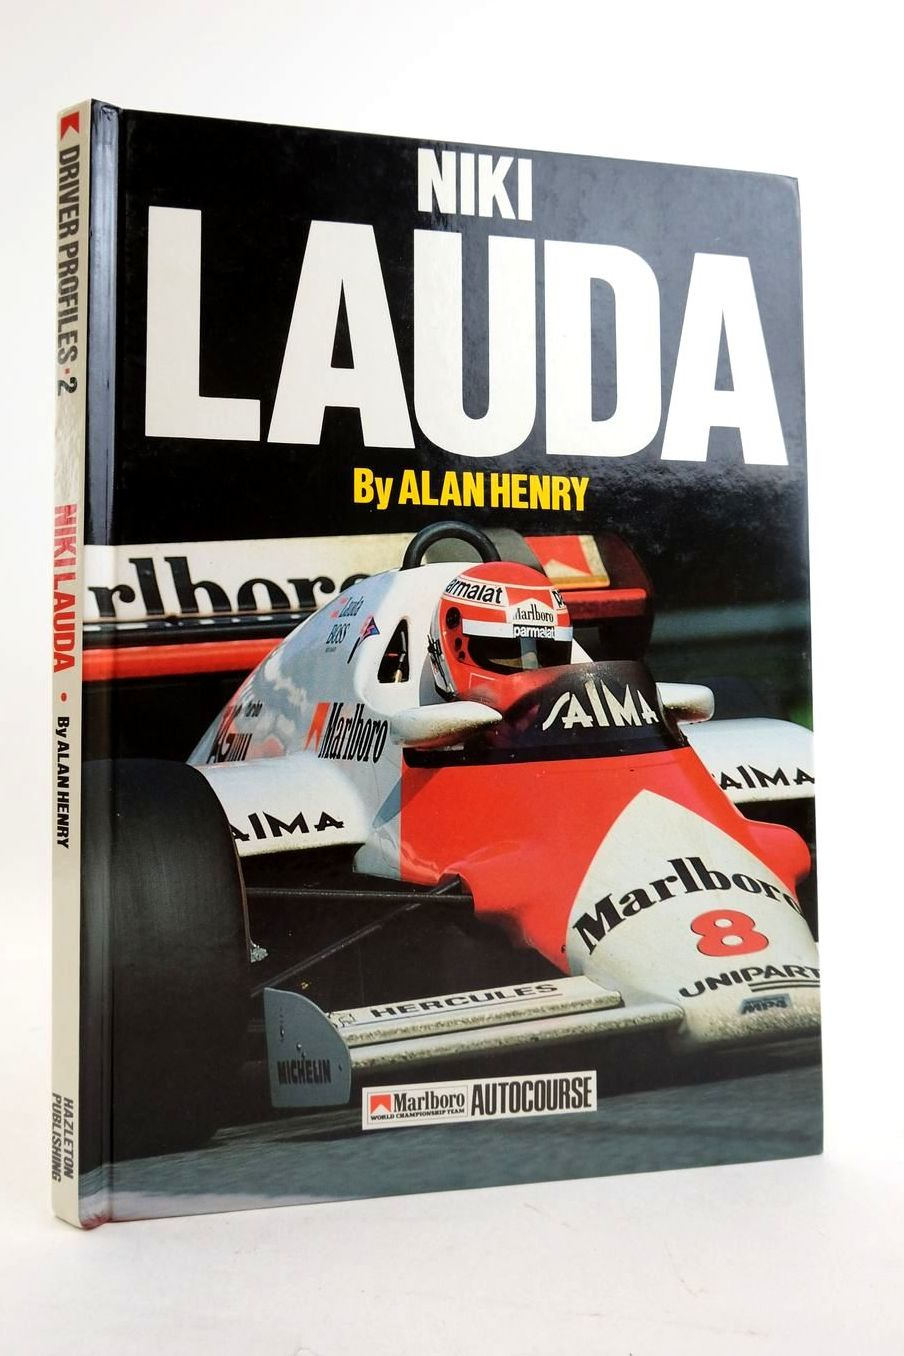 Photo of NIKI LAUDA written by Henry, Alan published by Hazleton Publishing (STOCK CODE: 1821712)  for sale by Stella & Rose's Books